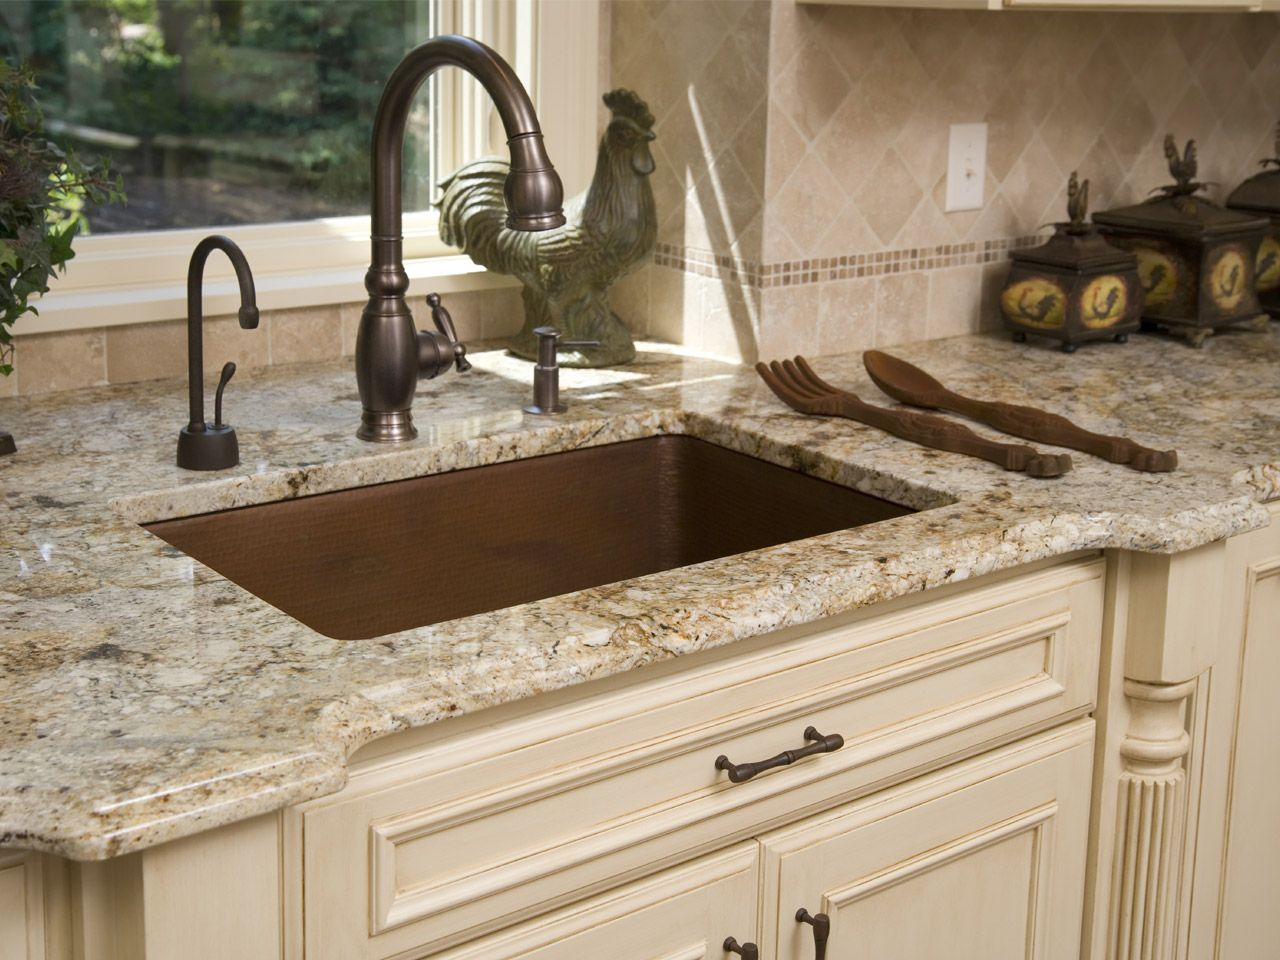 Kitchen Cabinets Store Capps Serves Roanoke Va And Beyond Cream Kitchen Cabinets Cream Colored Kitchen Cabinets Granite Kitchen